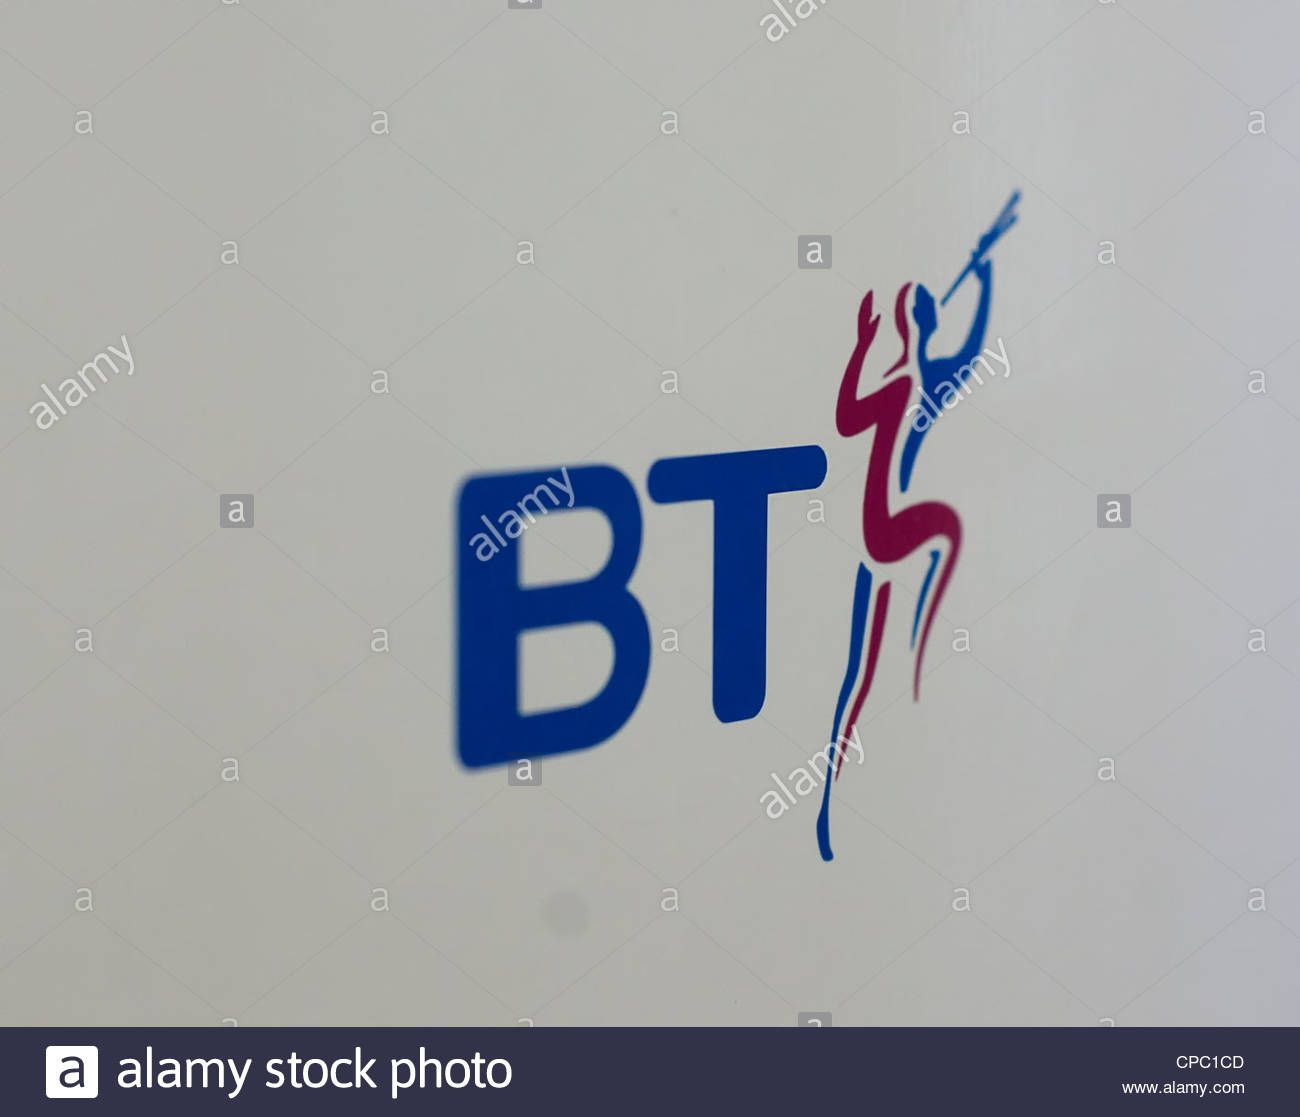 BT Retired Its Greek Piper (aulos) Logo In 2003 In Favour